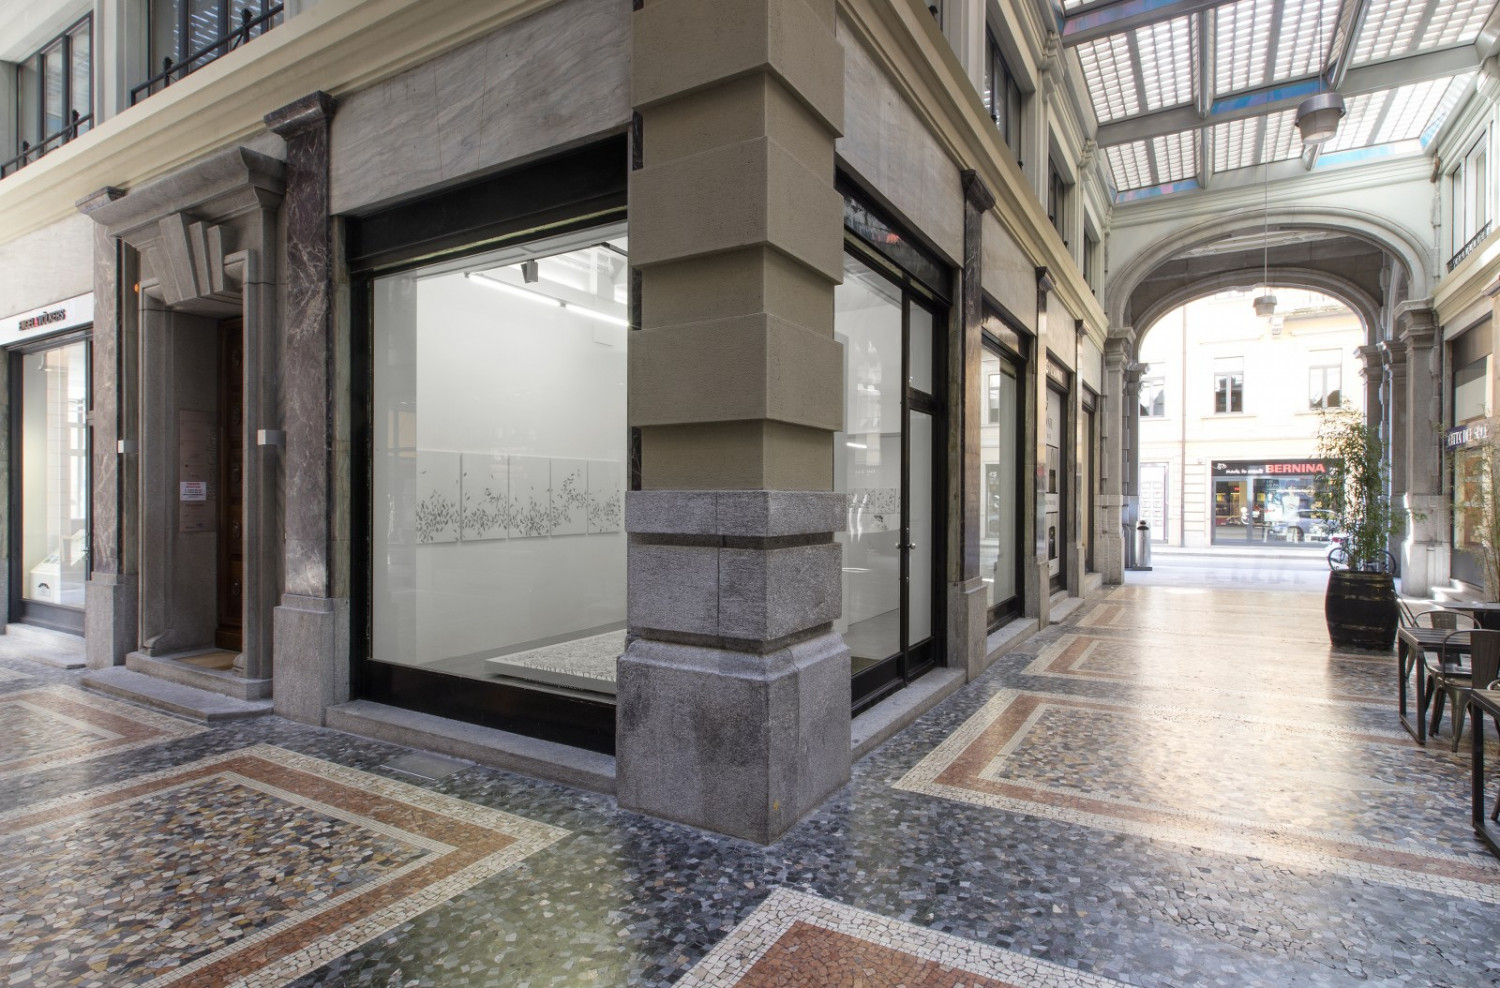 Véronique Arnold, Installation view, Buchmann Lugano / Via della Posta, 2018